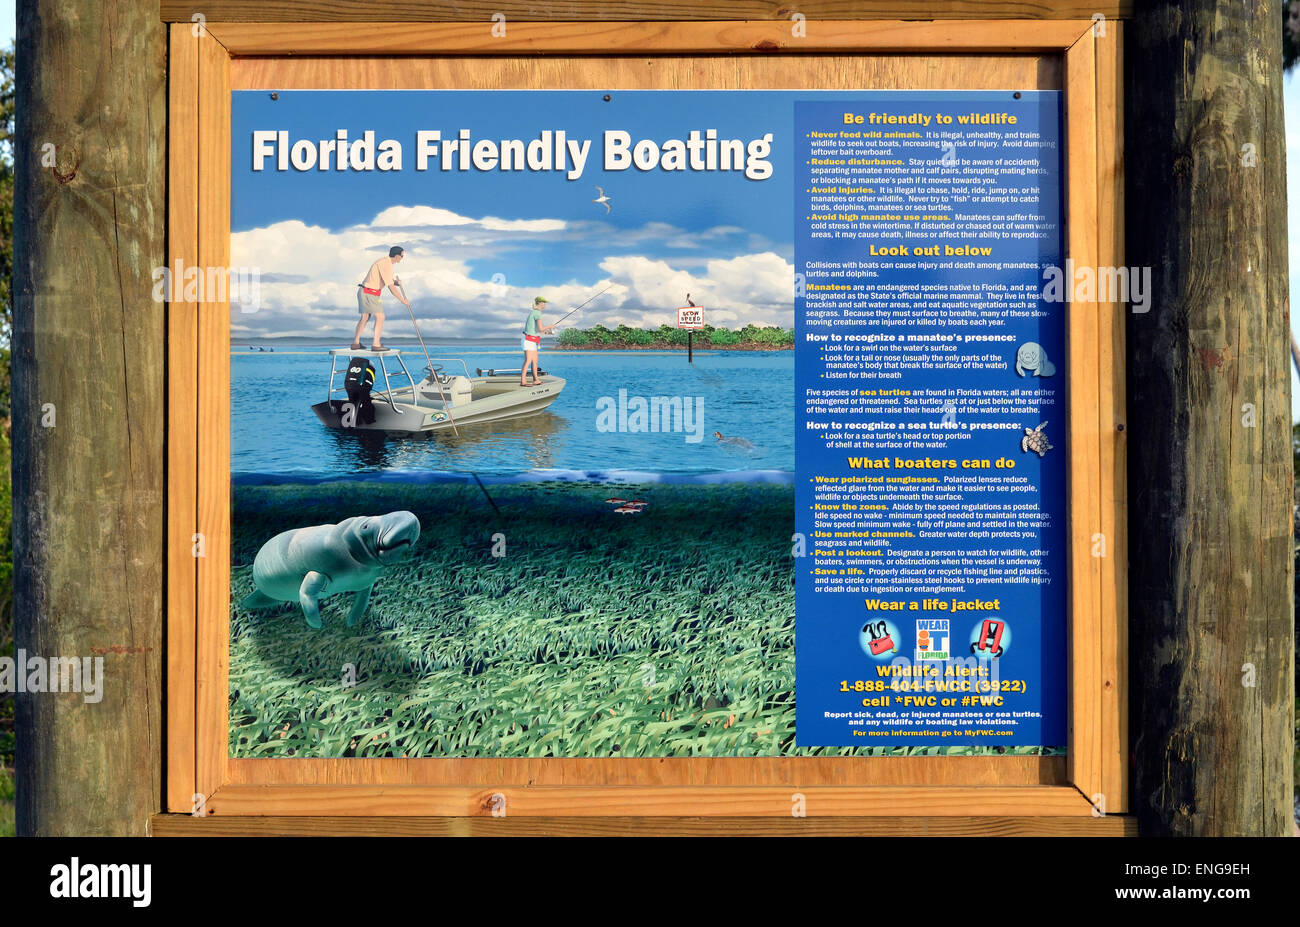 An illustrated sign at a boat launching site urges all boaters to be friendly to Florida wildlife, especially manatees, - Stock Image